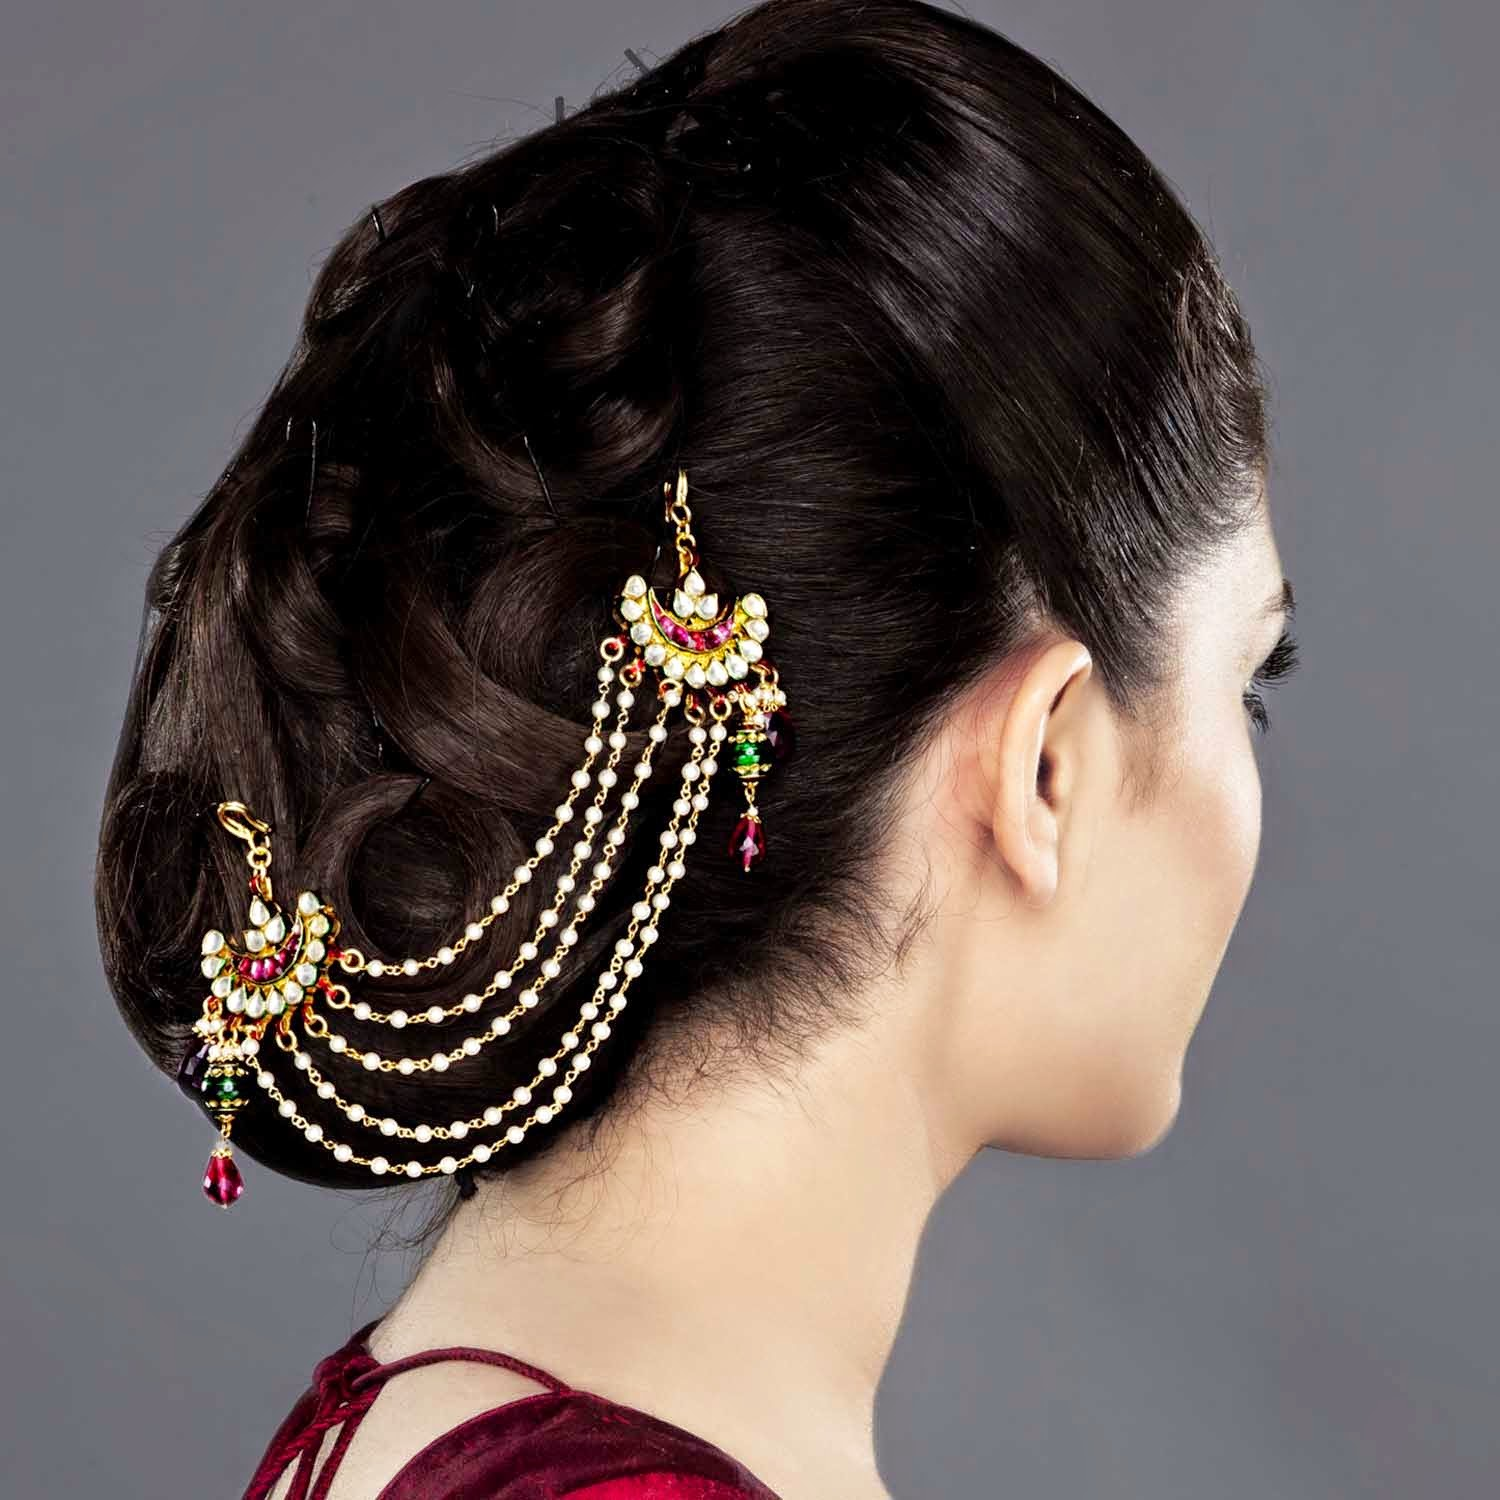 Simple Juda Hairstyle For Wedding: LATEST JUDA HAIRSTYLES 2014 FOR WOMEN Wallpapers